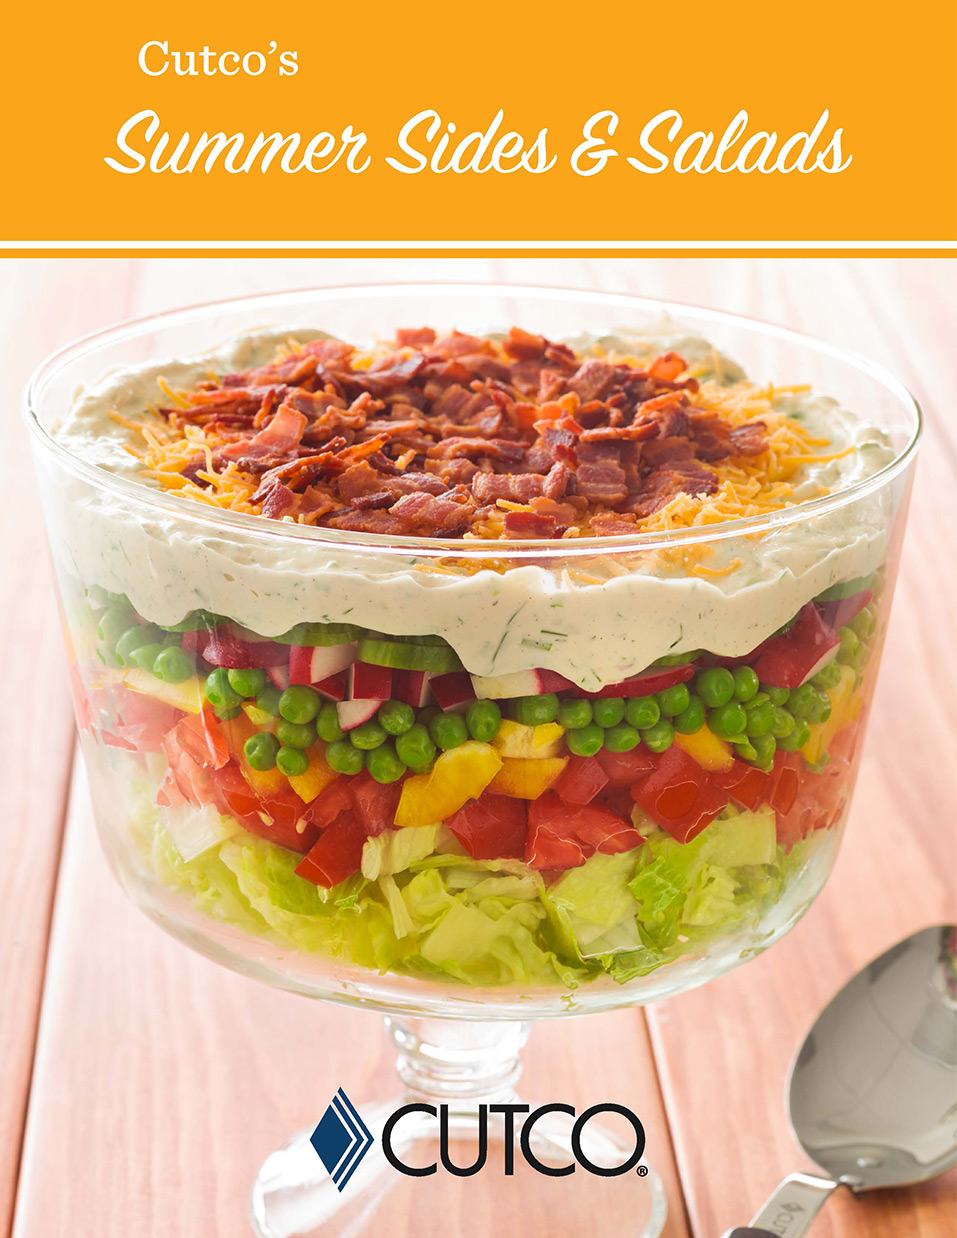 Cutco's Summer Sides and Salads